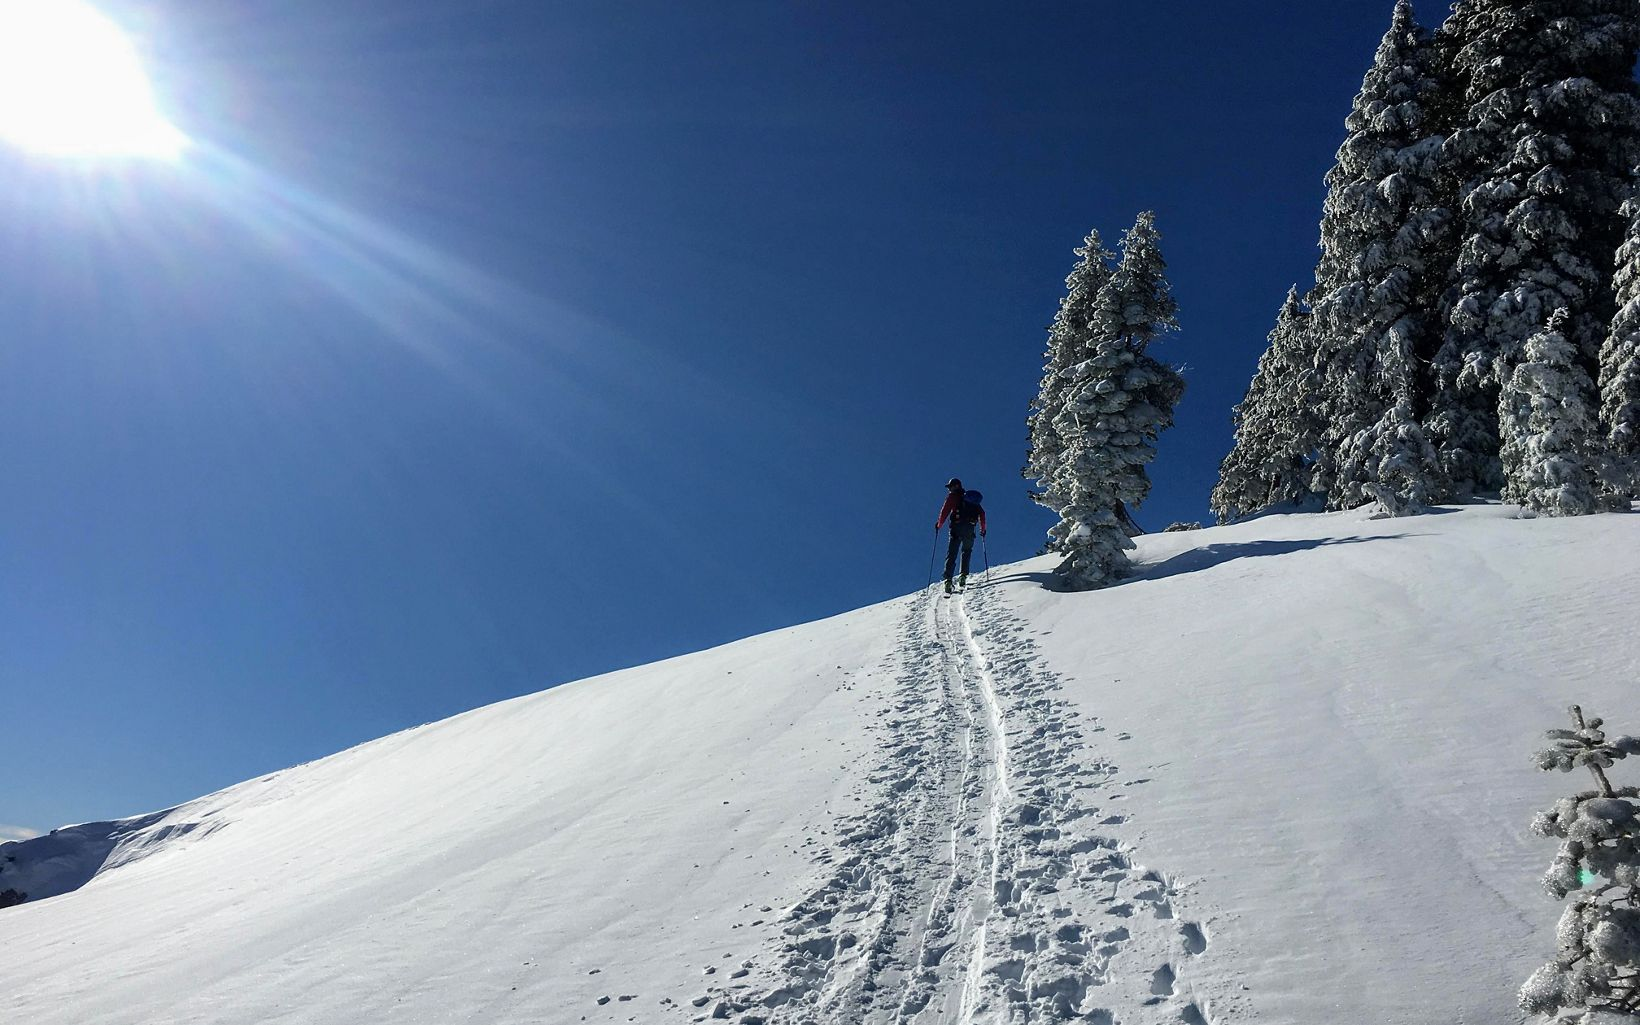 My wife and I enjoy backcountry skiing. There are lots of good places to go near Tahoe, but this photo was taken near Grouse Rock on the west shore.